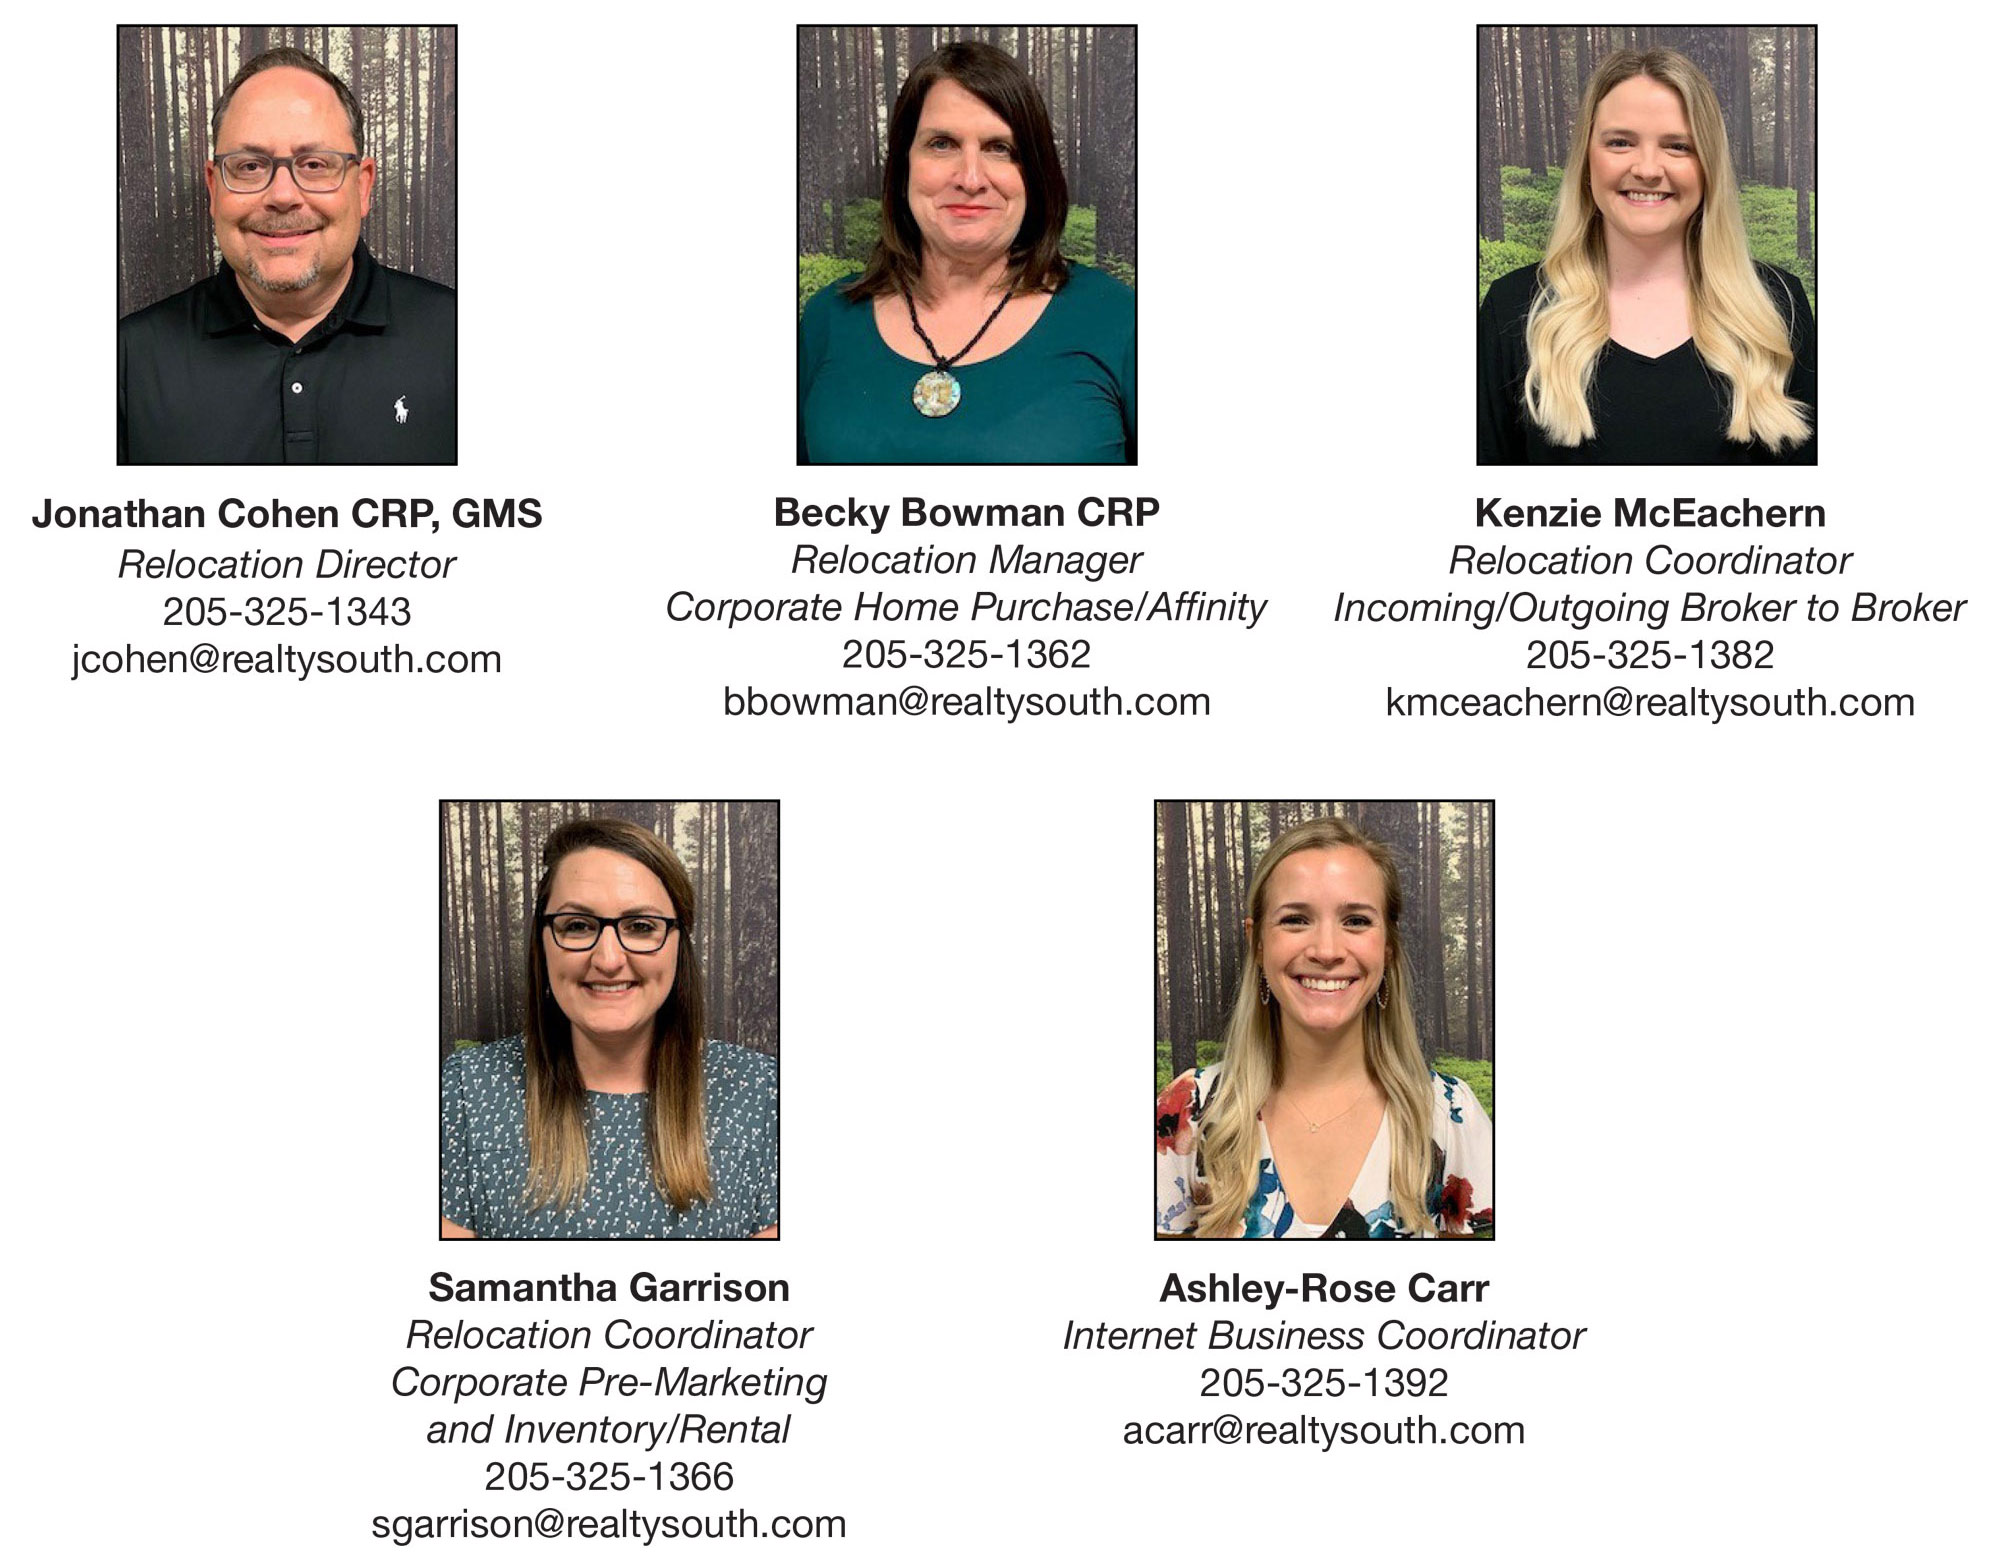 Meet our Relocation Team!